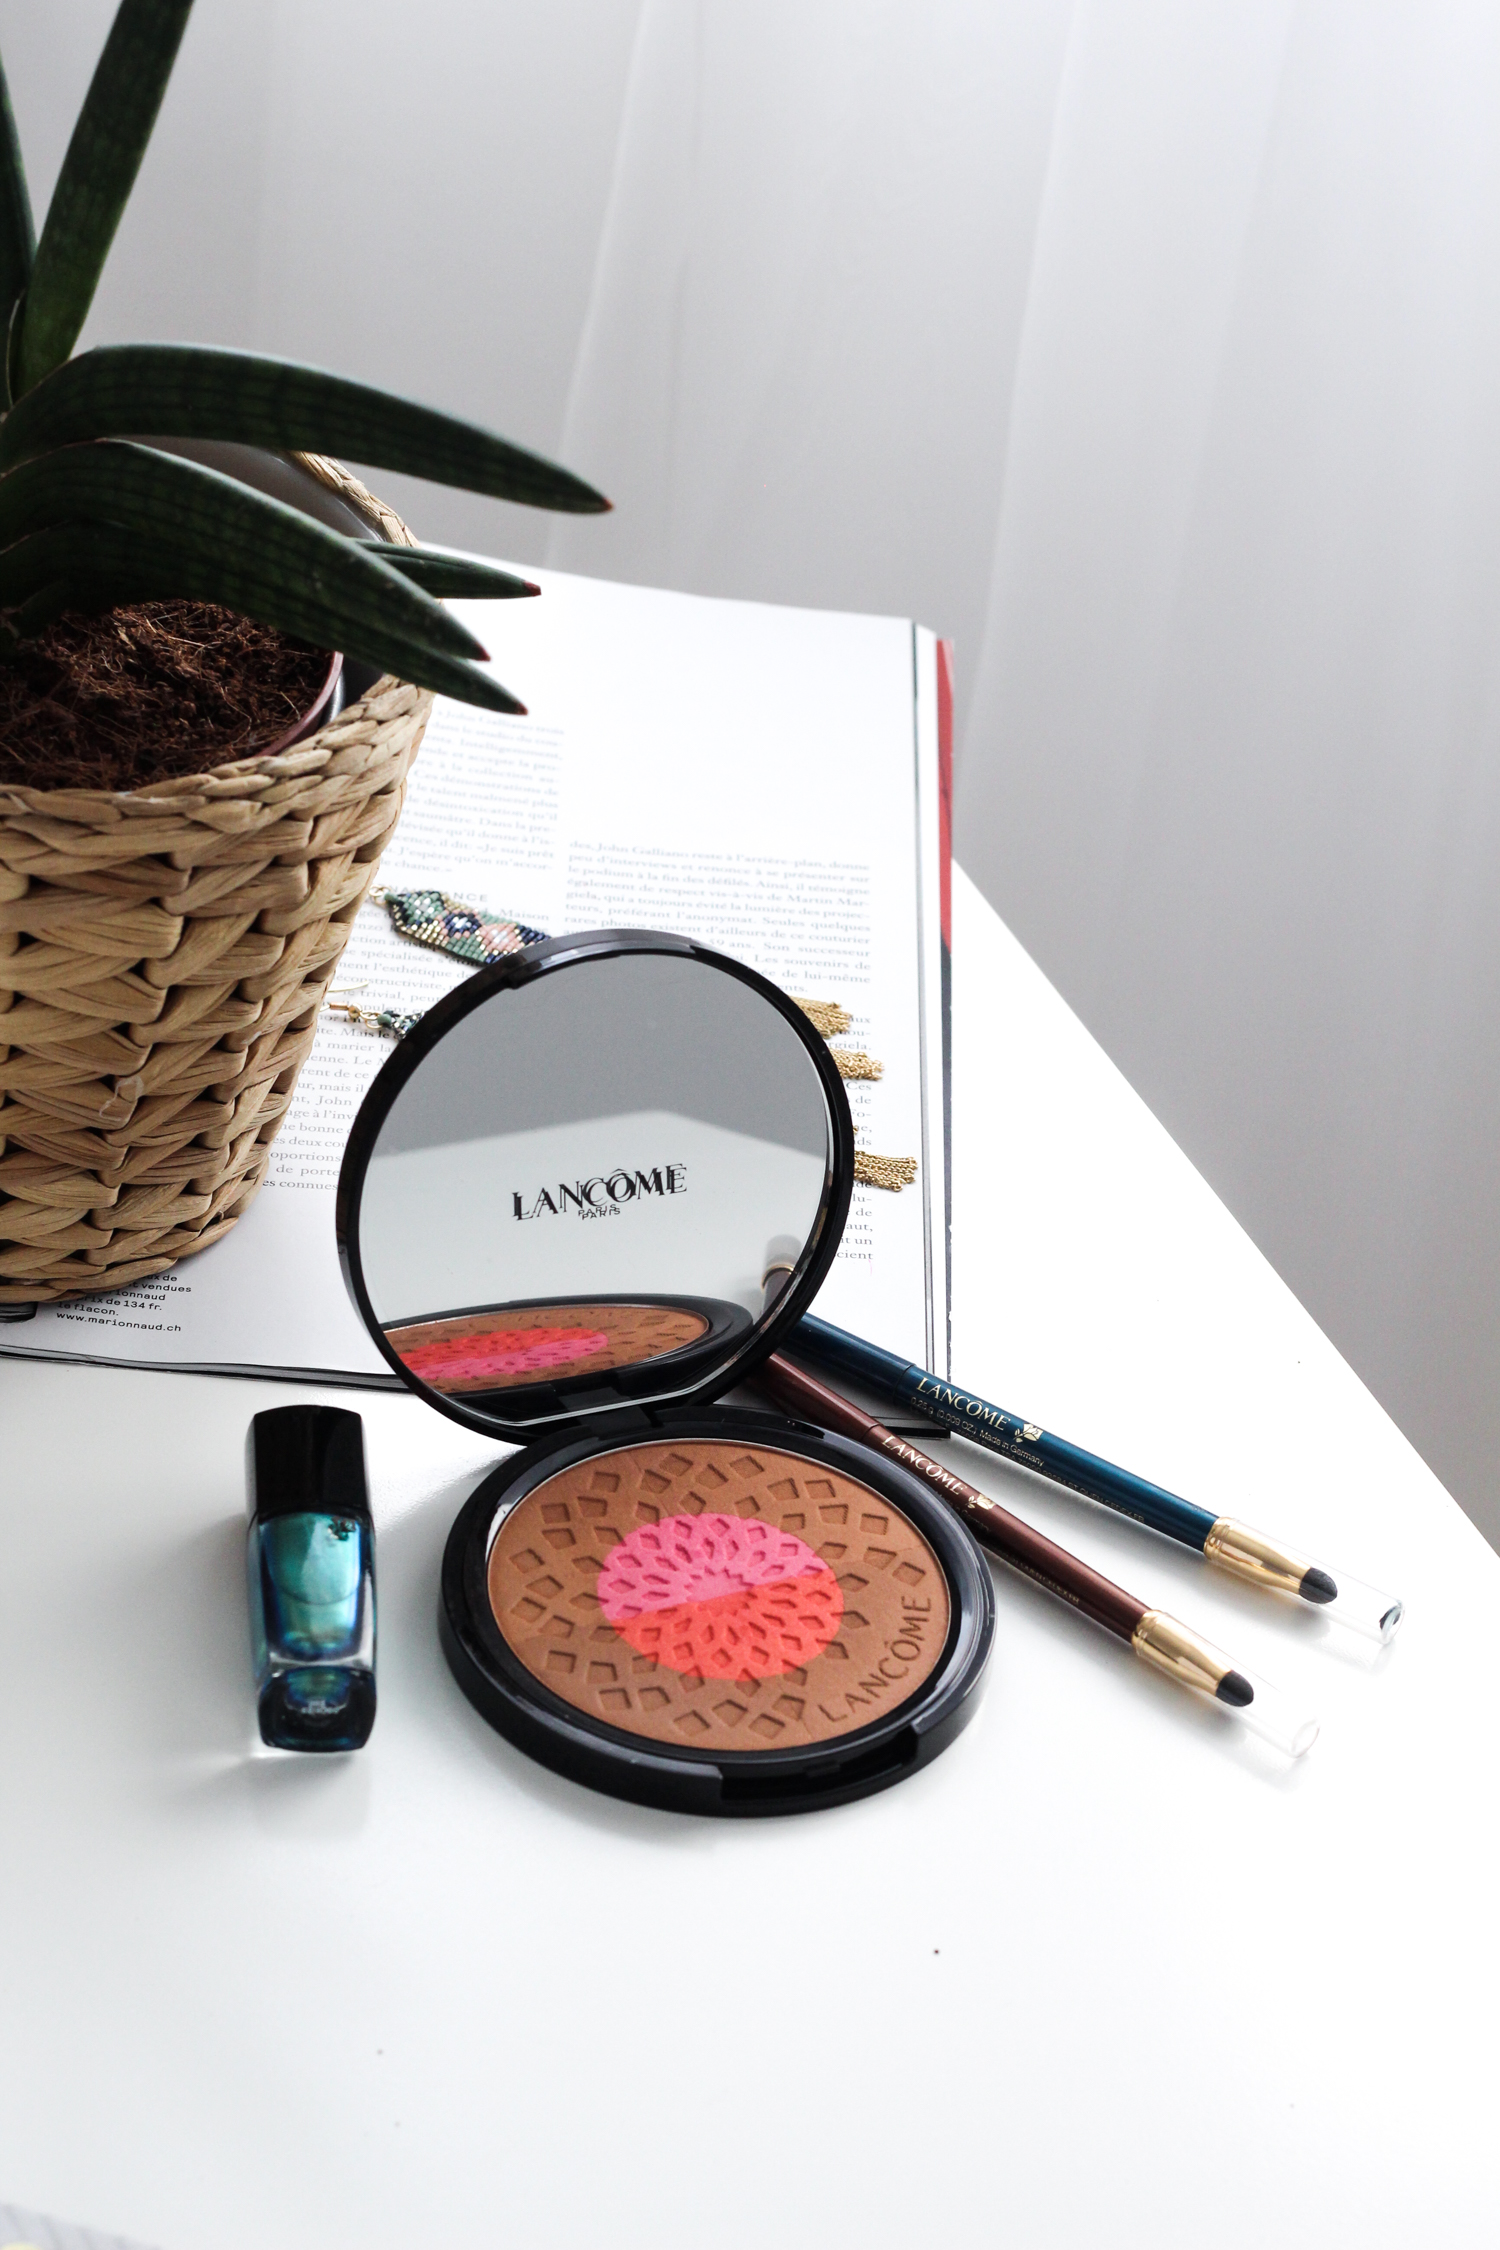 Lancôme_Monaco_Beach_Products-7